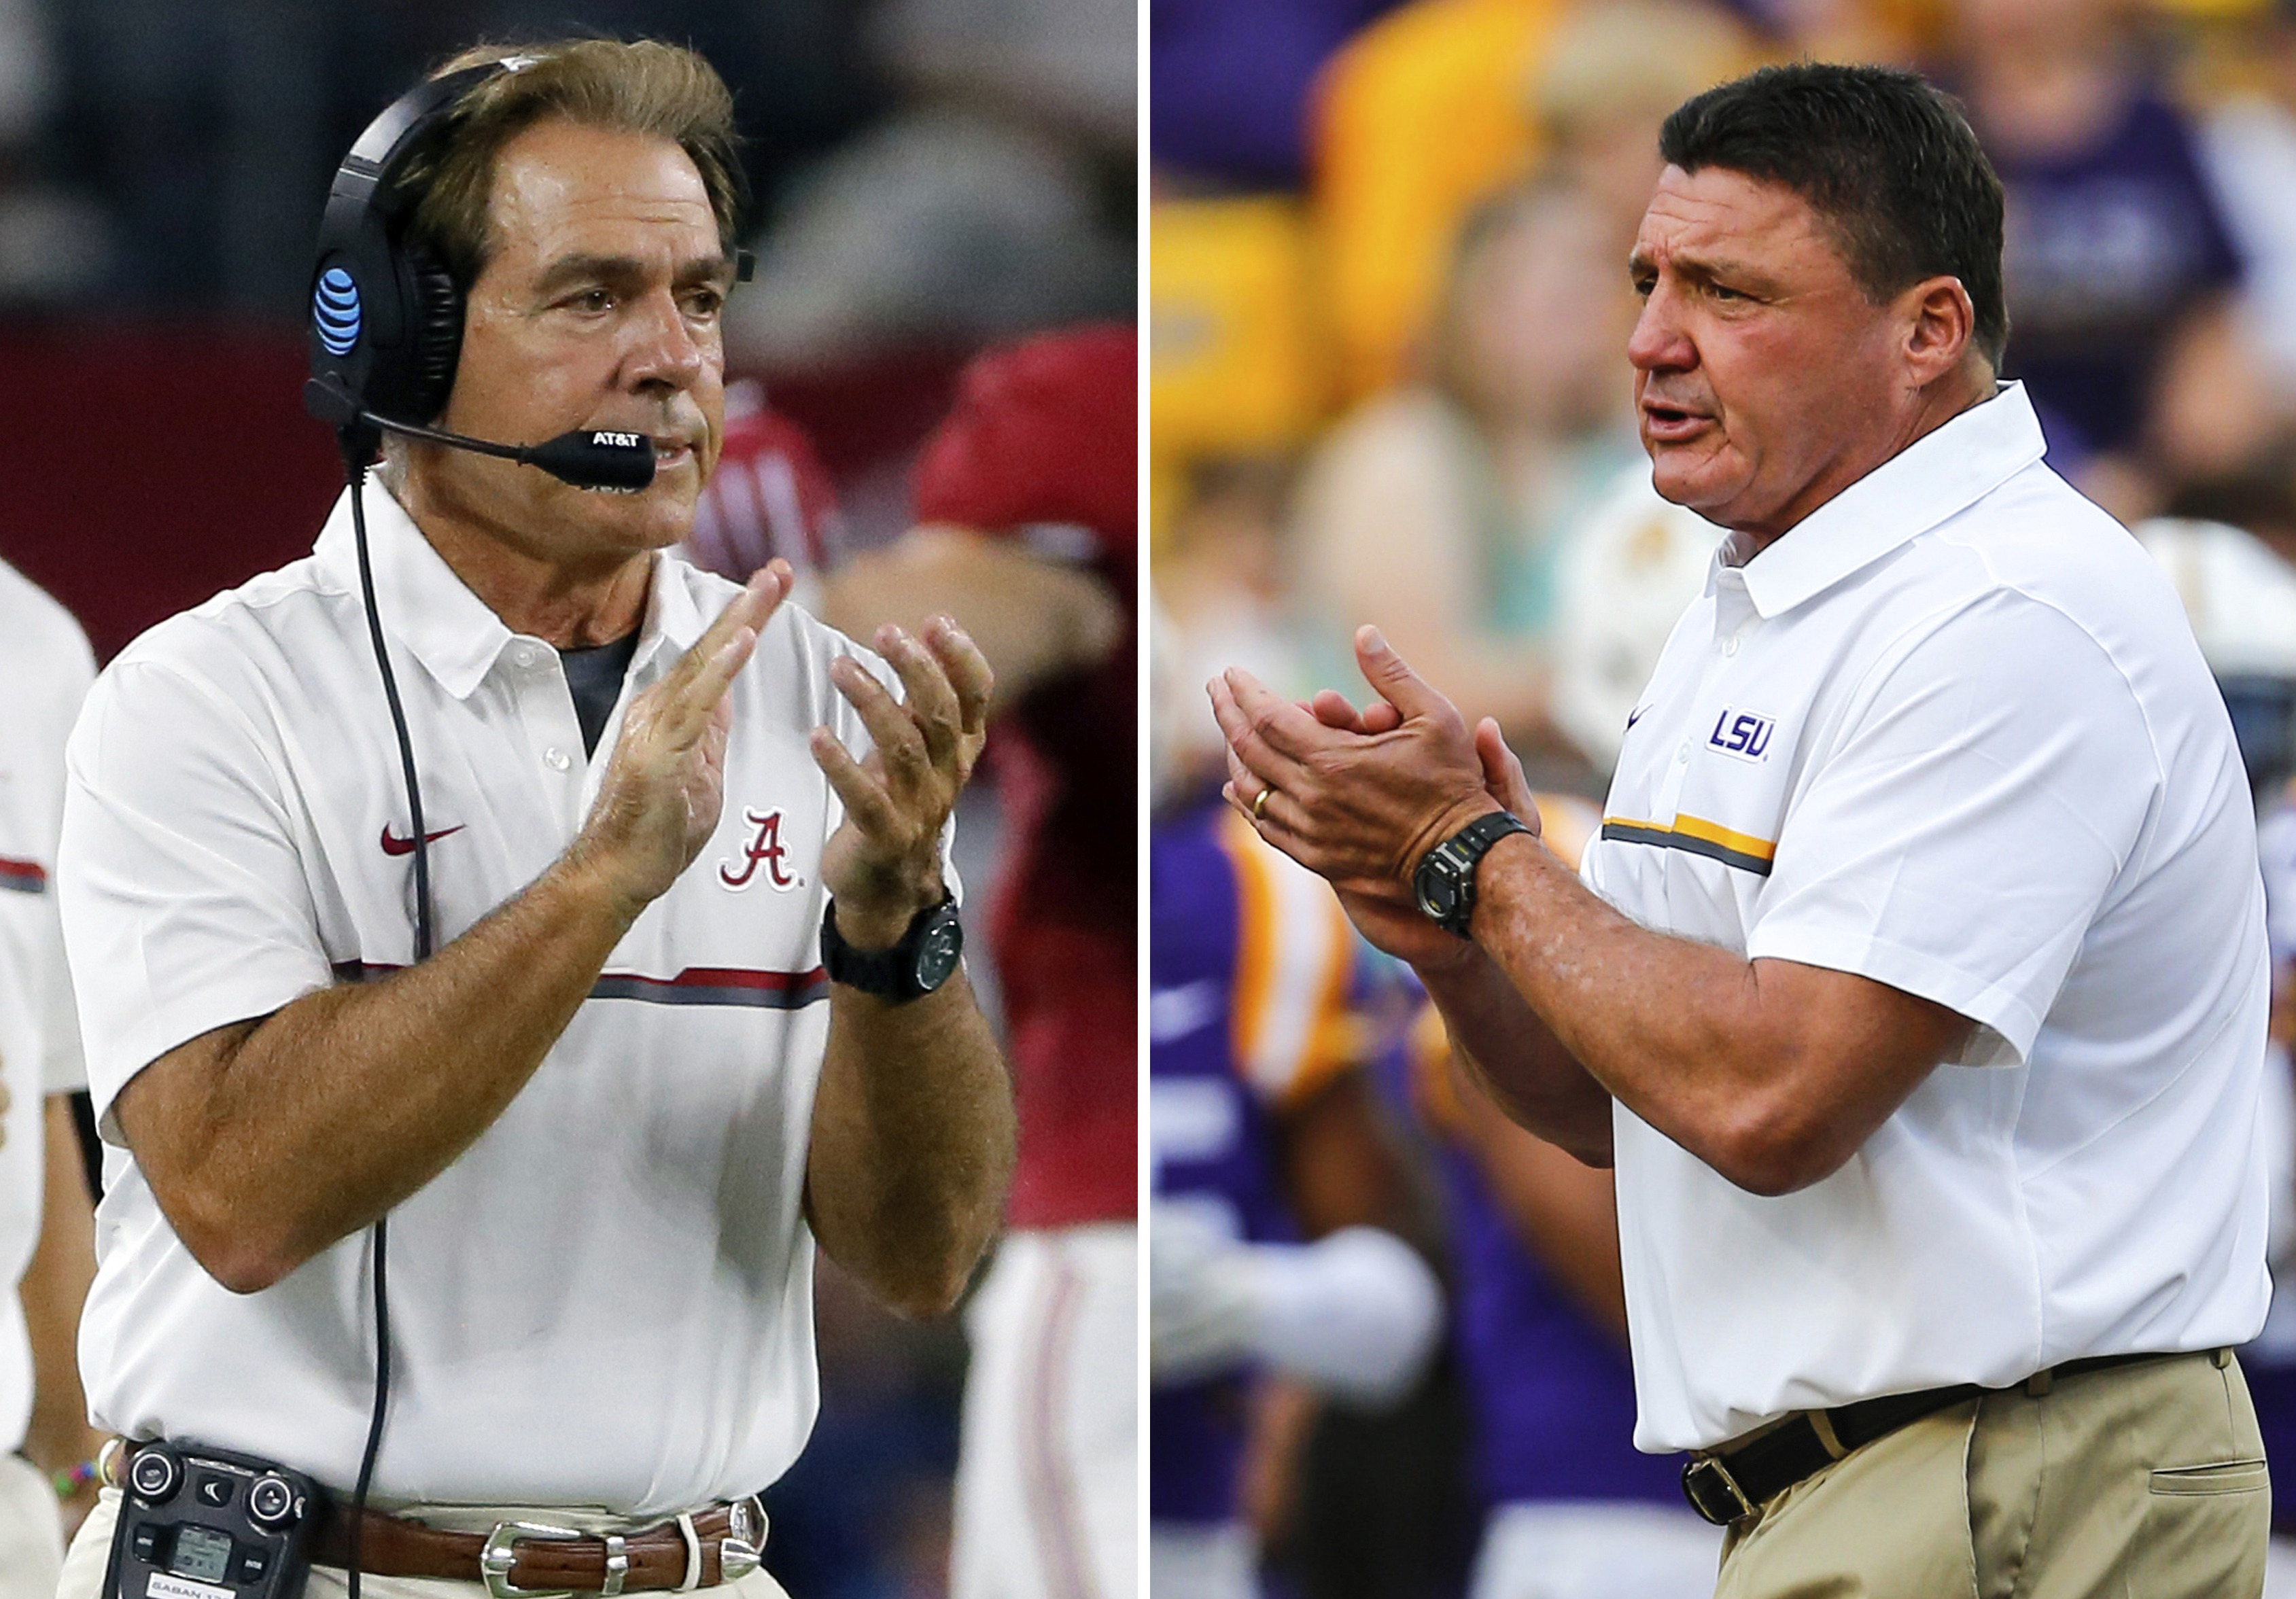 FILE - At left, in a Sept. 3, 2016, file photo, Alabama coach Nick Saban applauds on the sideline during the first half of an NCAA college football game against Southern California, in Arlington, Texas. At right, in an Oct. 15, 2016, file photo, LSU head